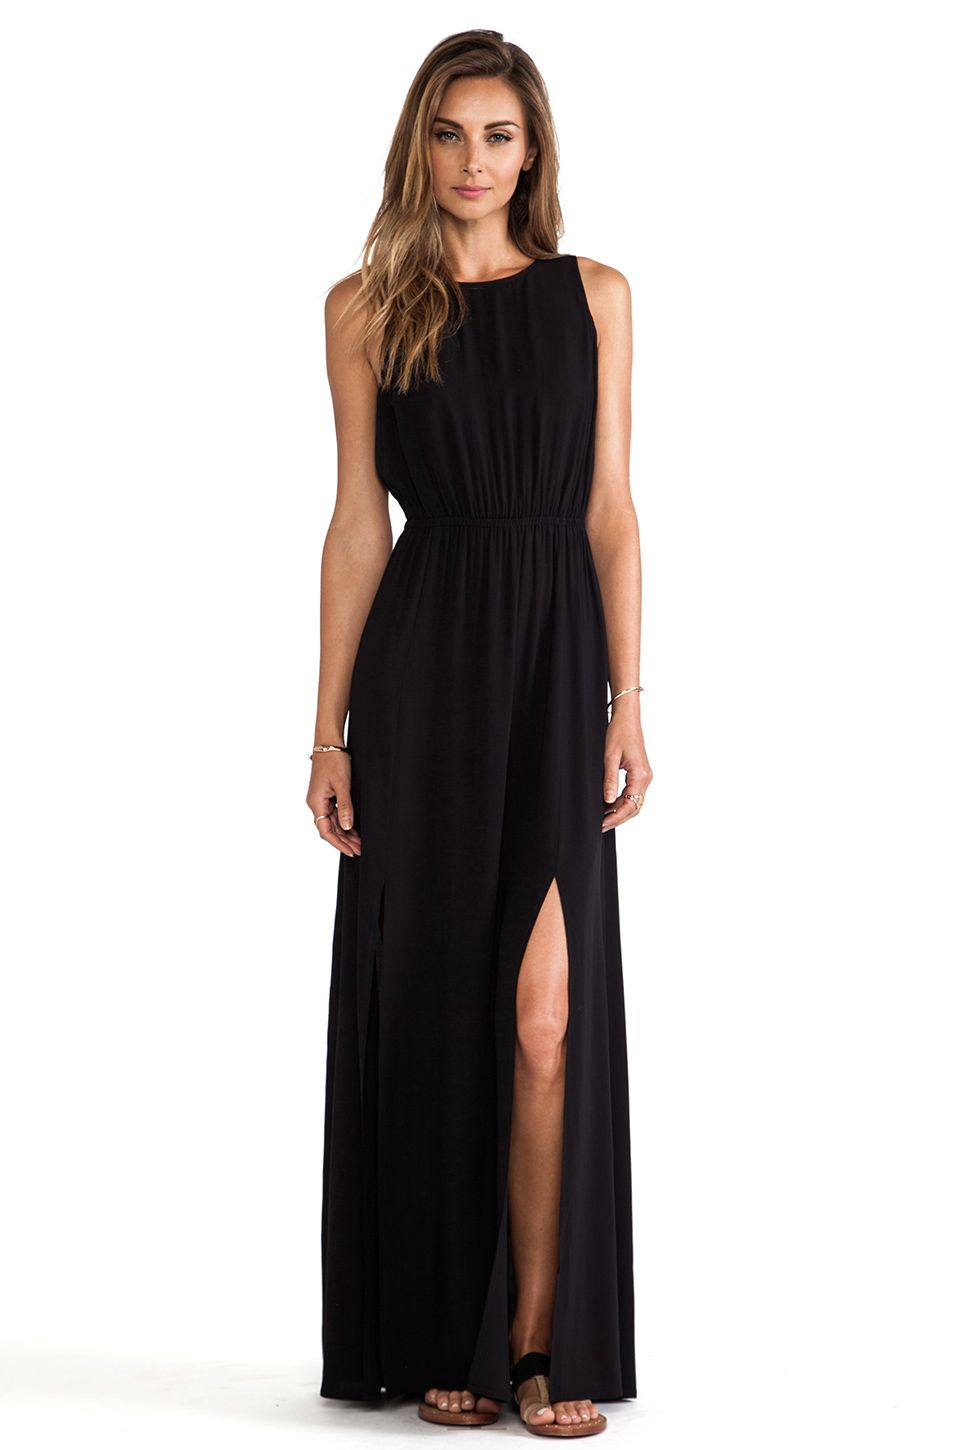 Summer black maxi dress day or evening dress revolveclothing